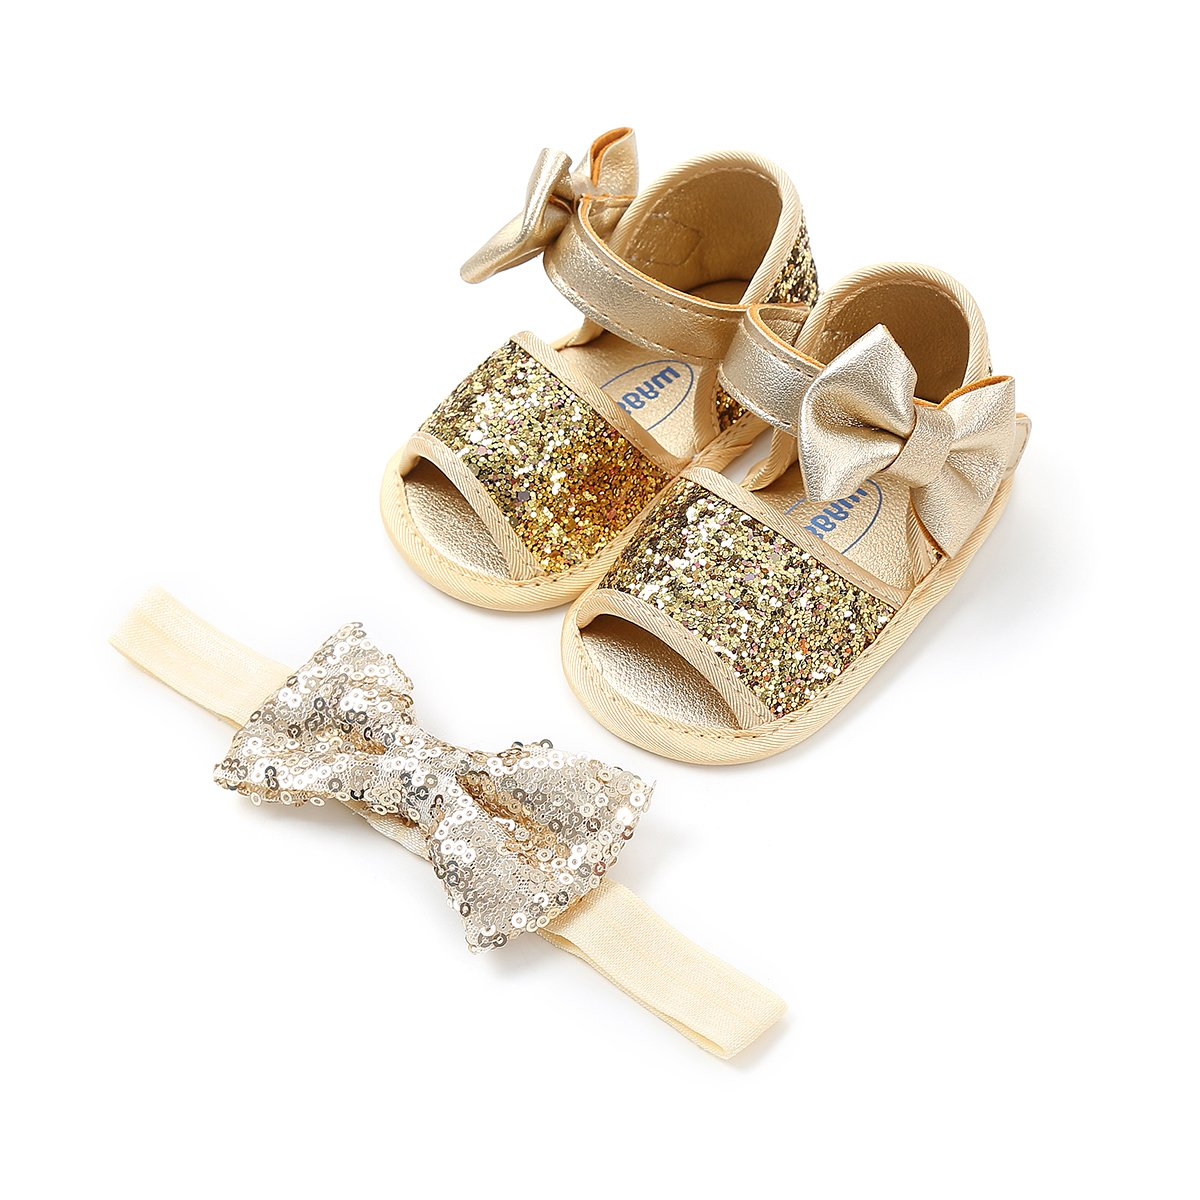 Isbasic Baby Girls Summer Sandals Pu Leather Rubber Sole Antiskid First Walking Shoes (6-12 Months, 1820-gold)